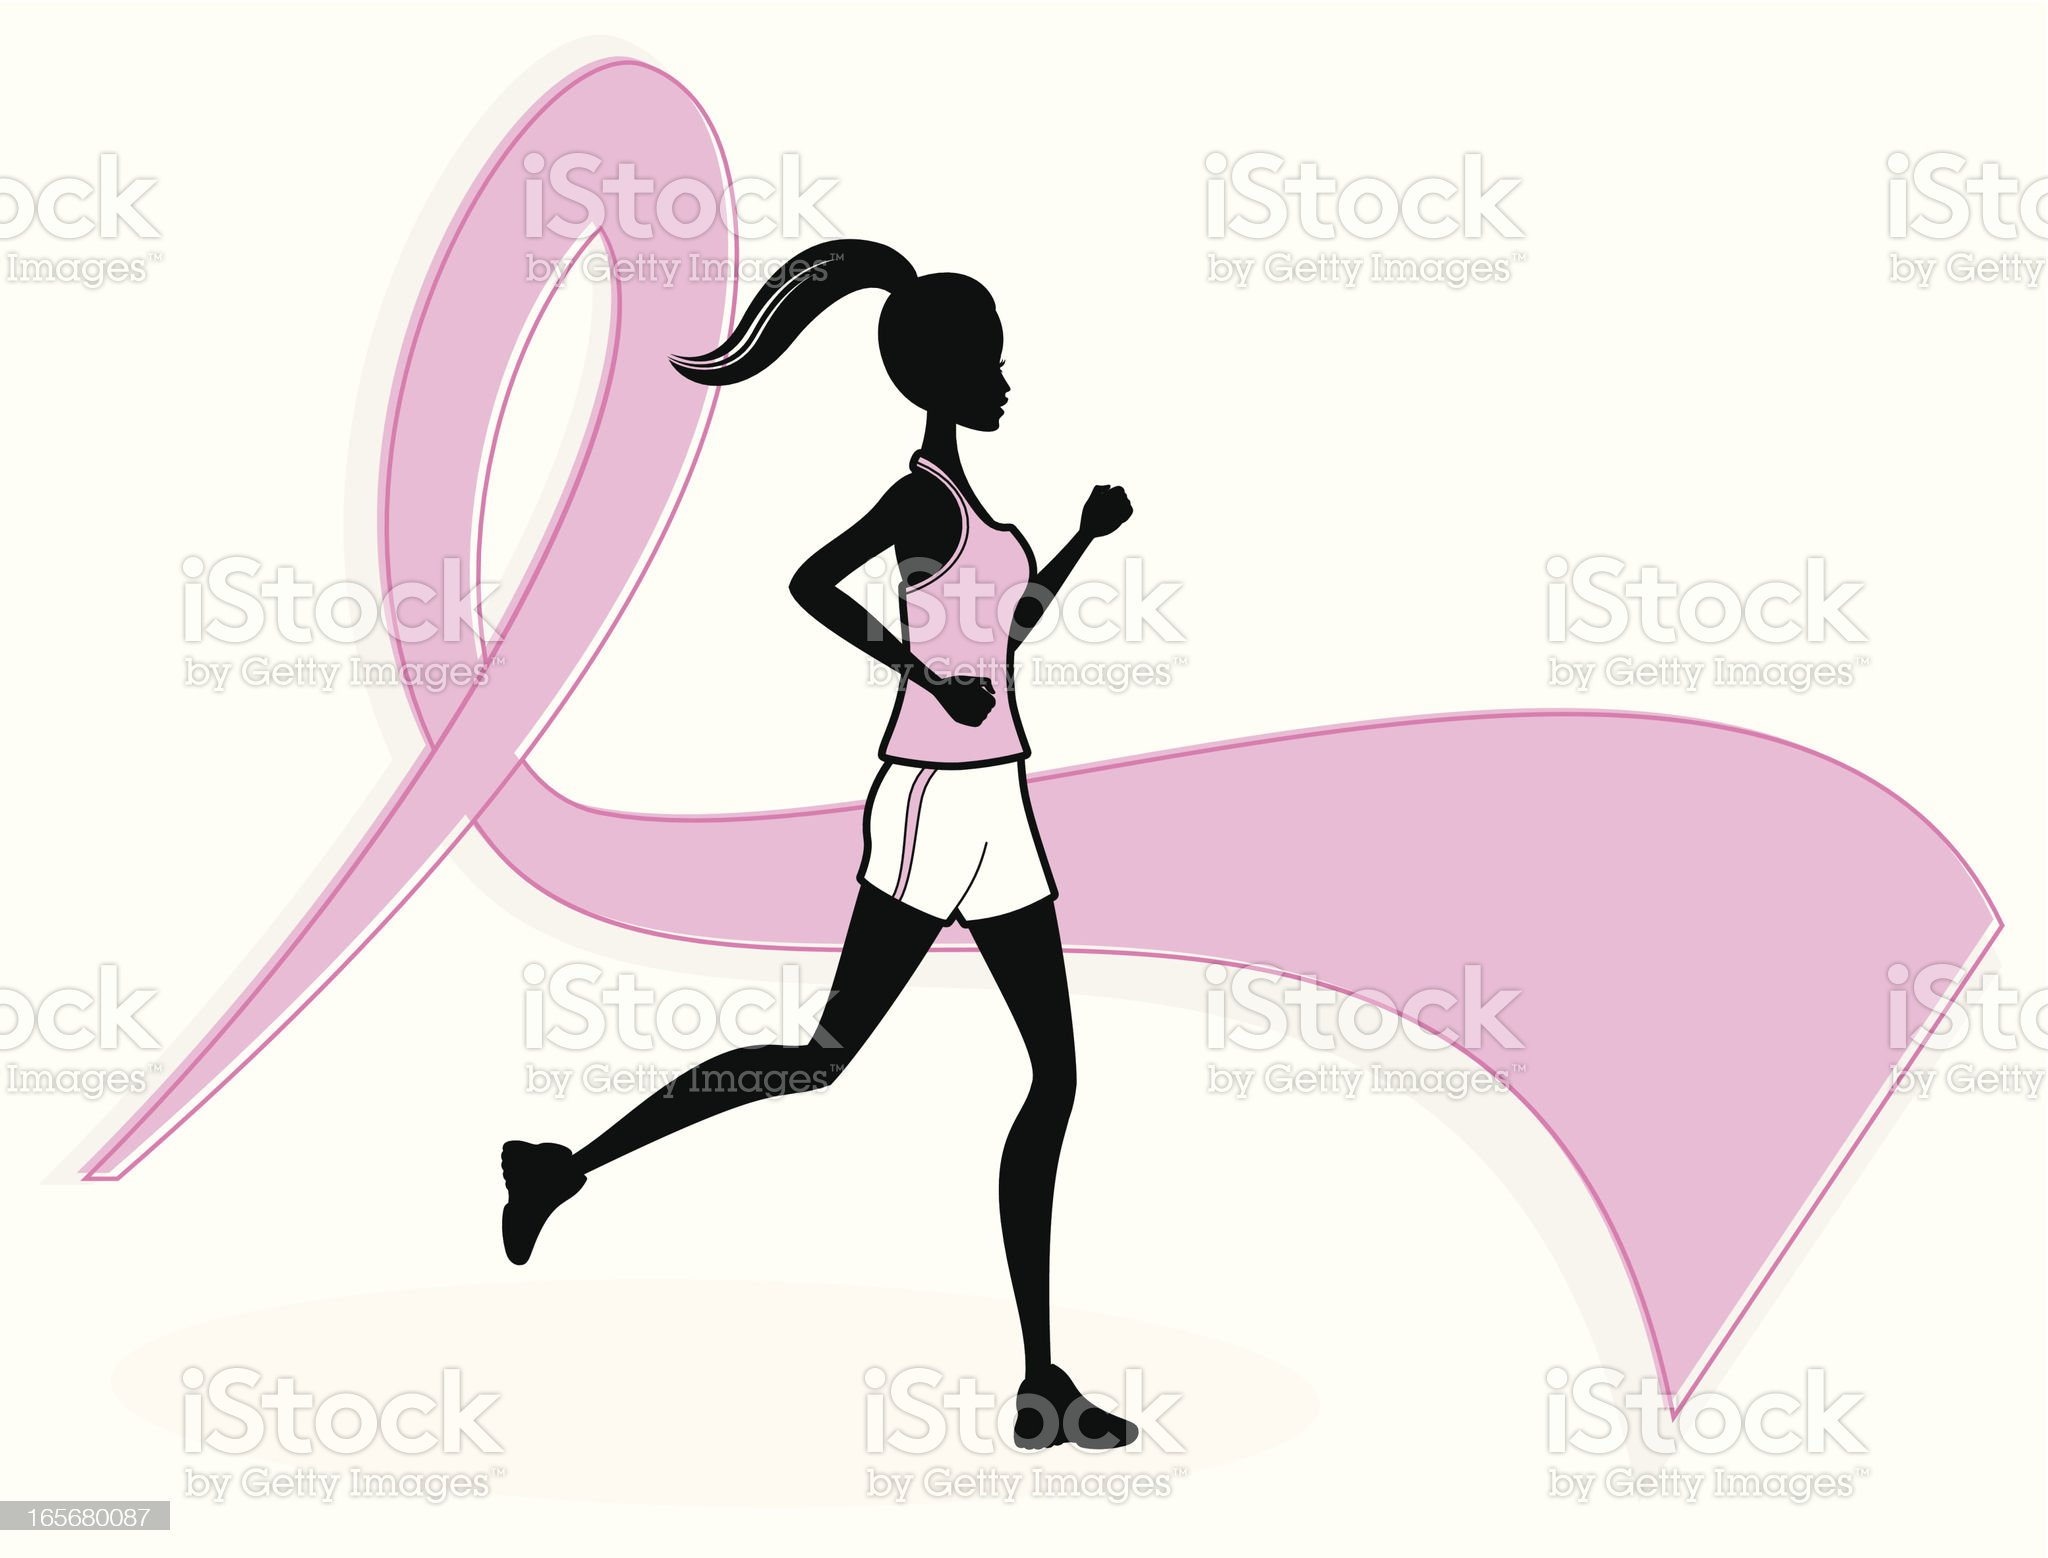 Breast Cancer Runner royalty-free stock vector art